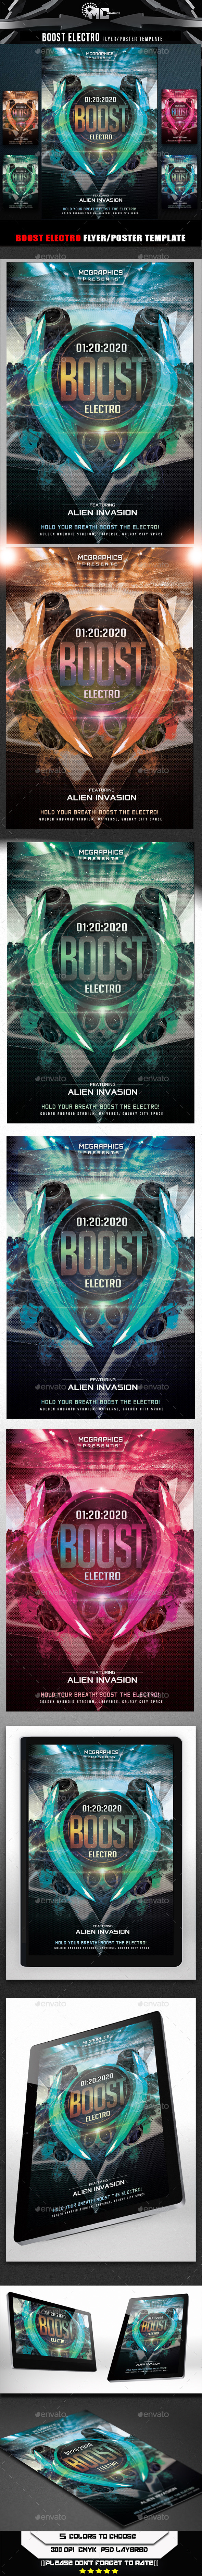 Boost Electro Flyer Template